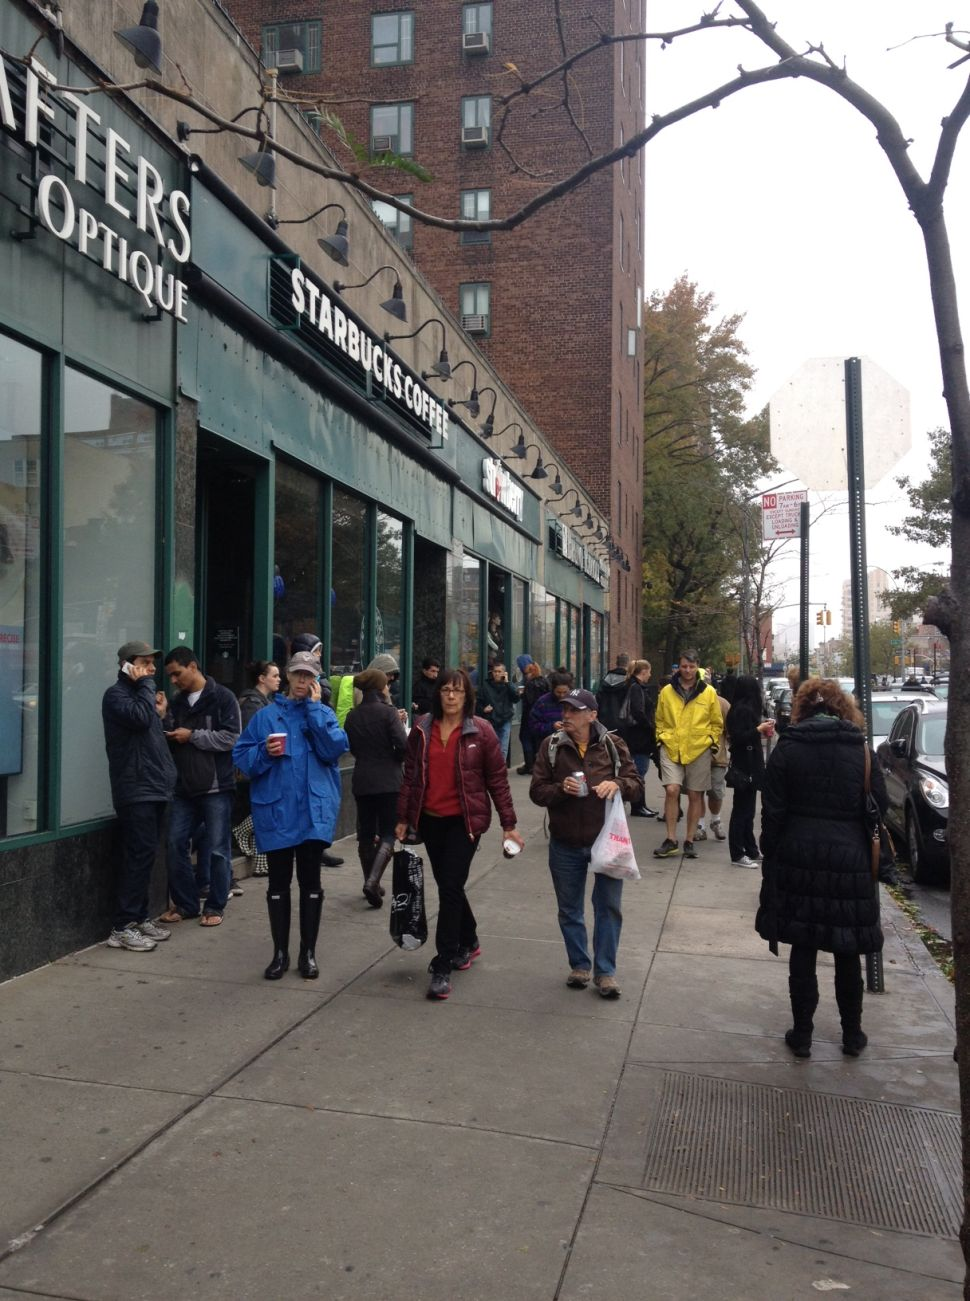 People Clustering for Cell Phone Service, Pitch Black Hospitals Among the Oddities of Post-Sandy Manhattan